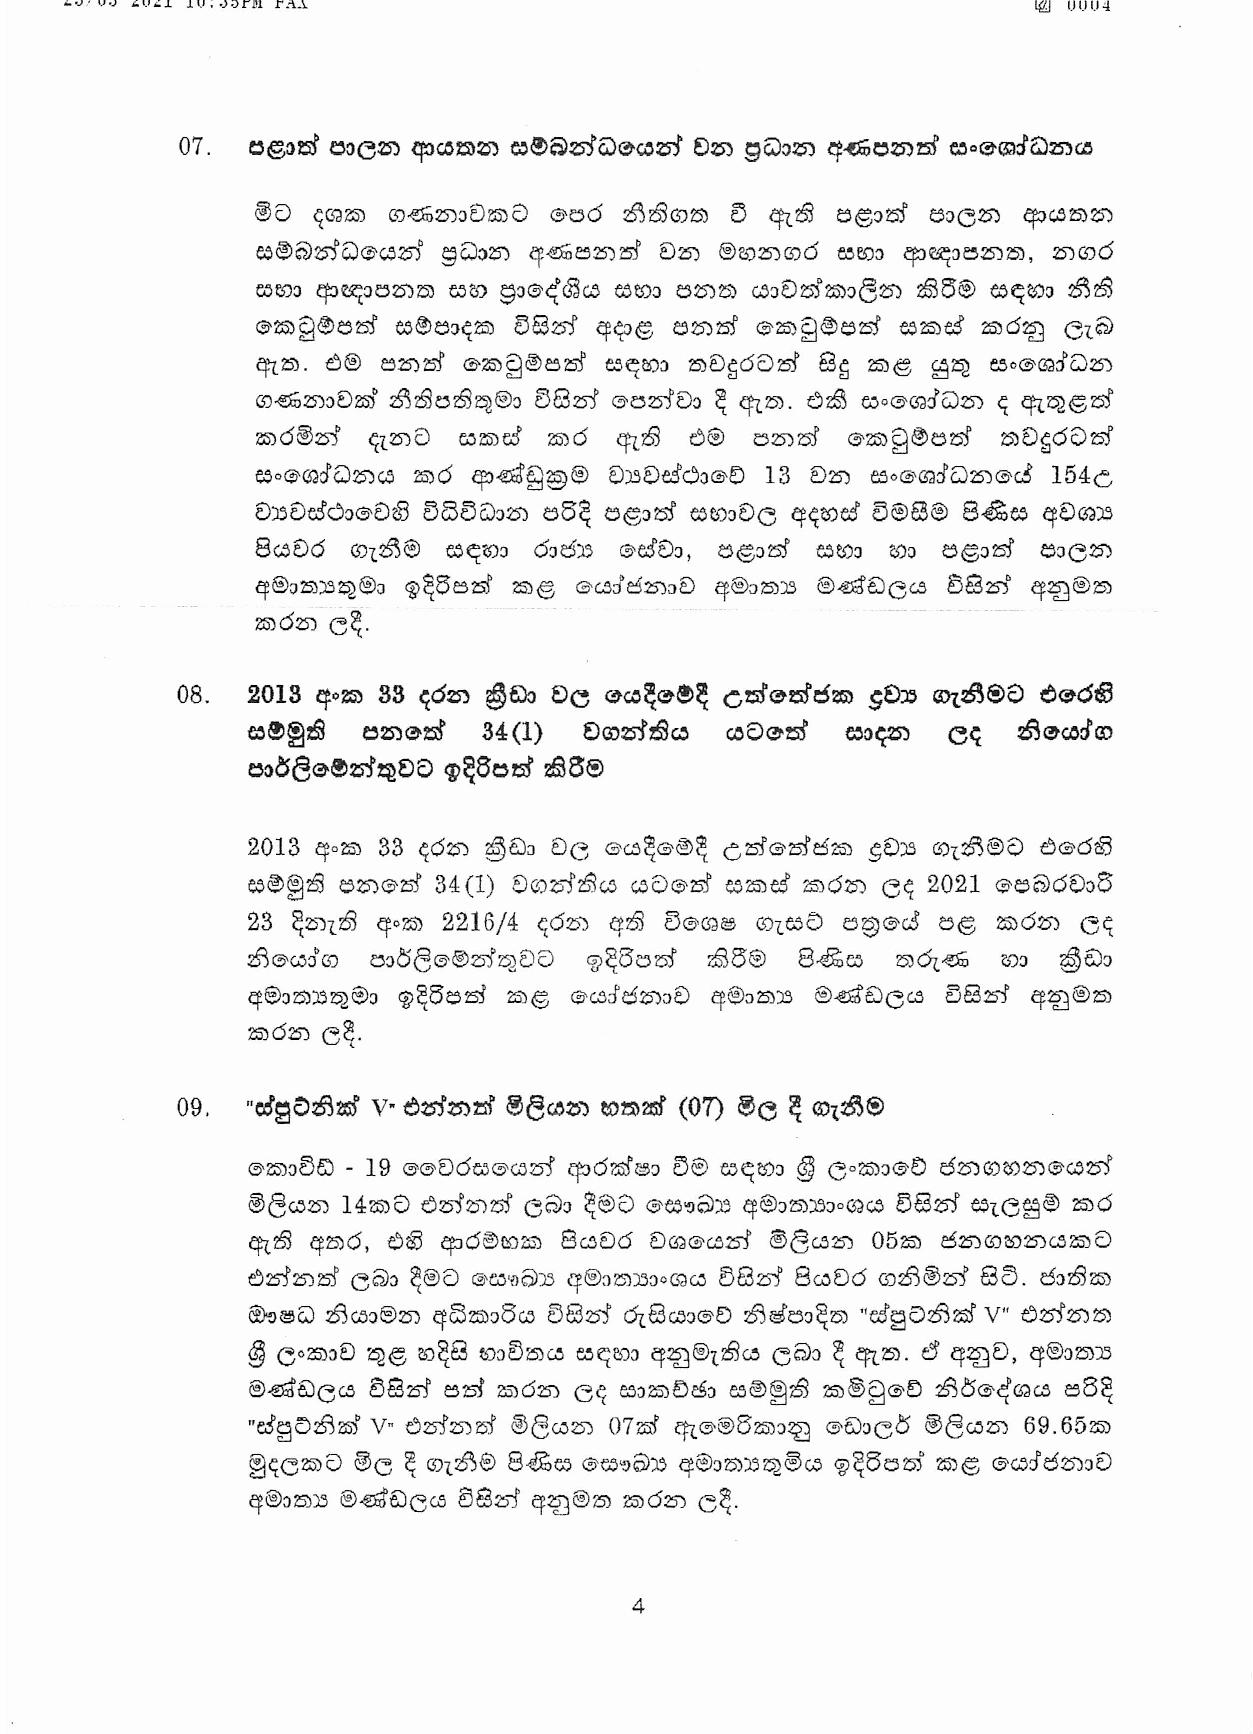 Cabinet Decision on 23.03.2021 page 004